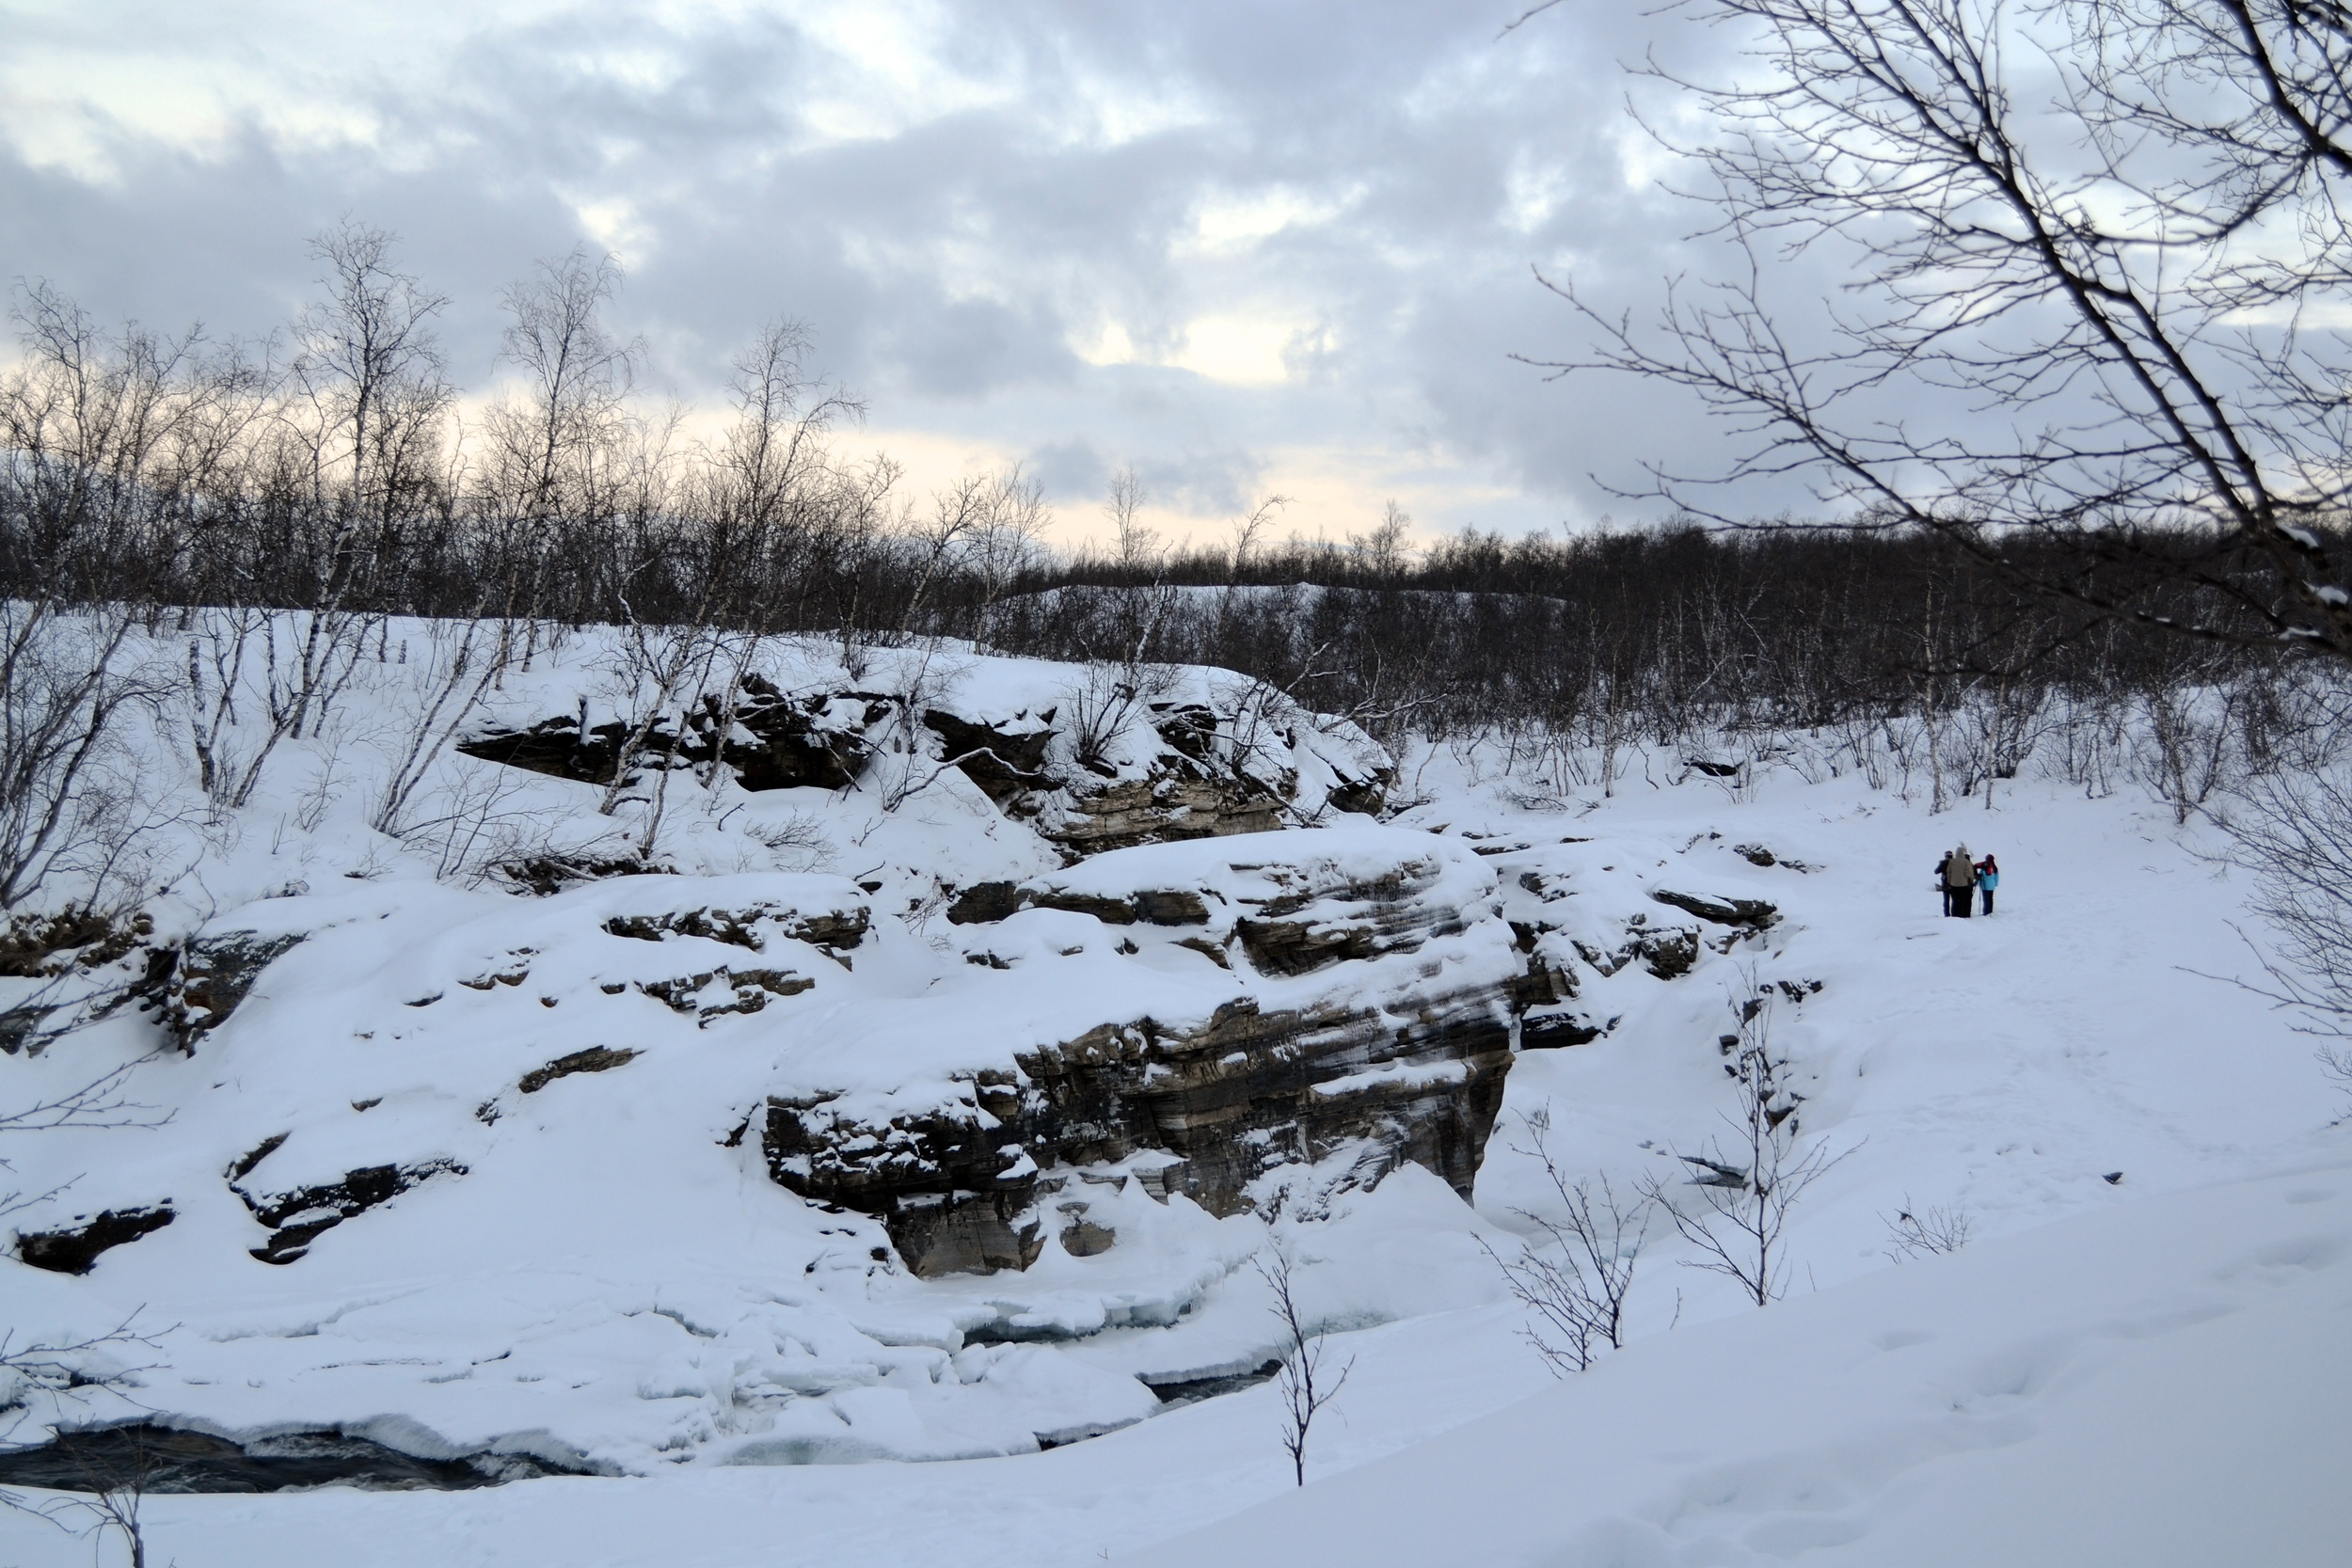 Along the Kungsleden -- the Abisko River is visible along the rocks.